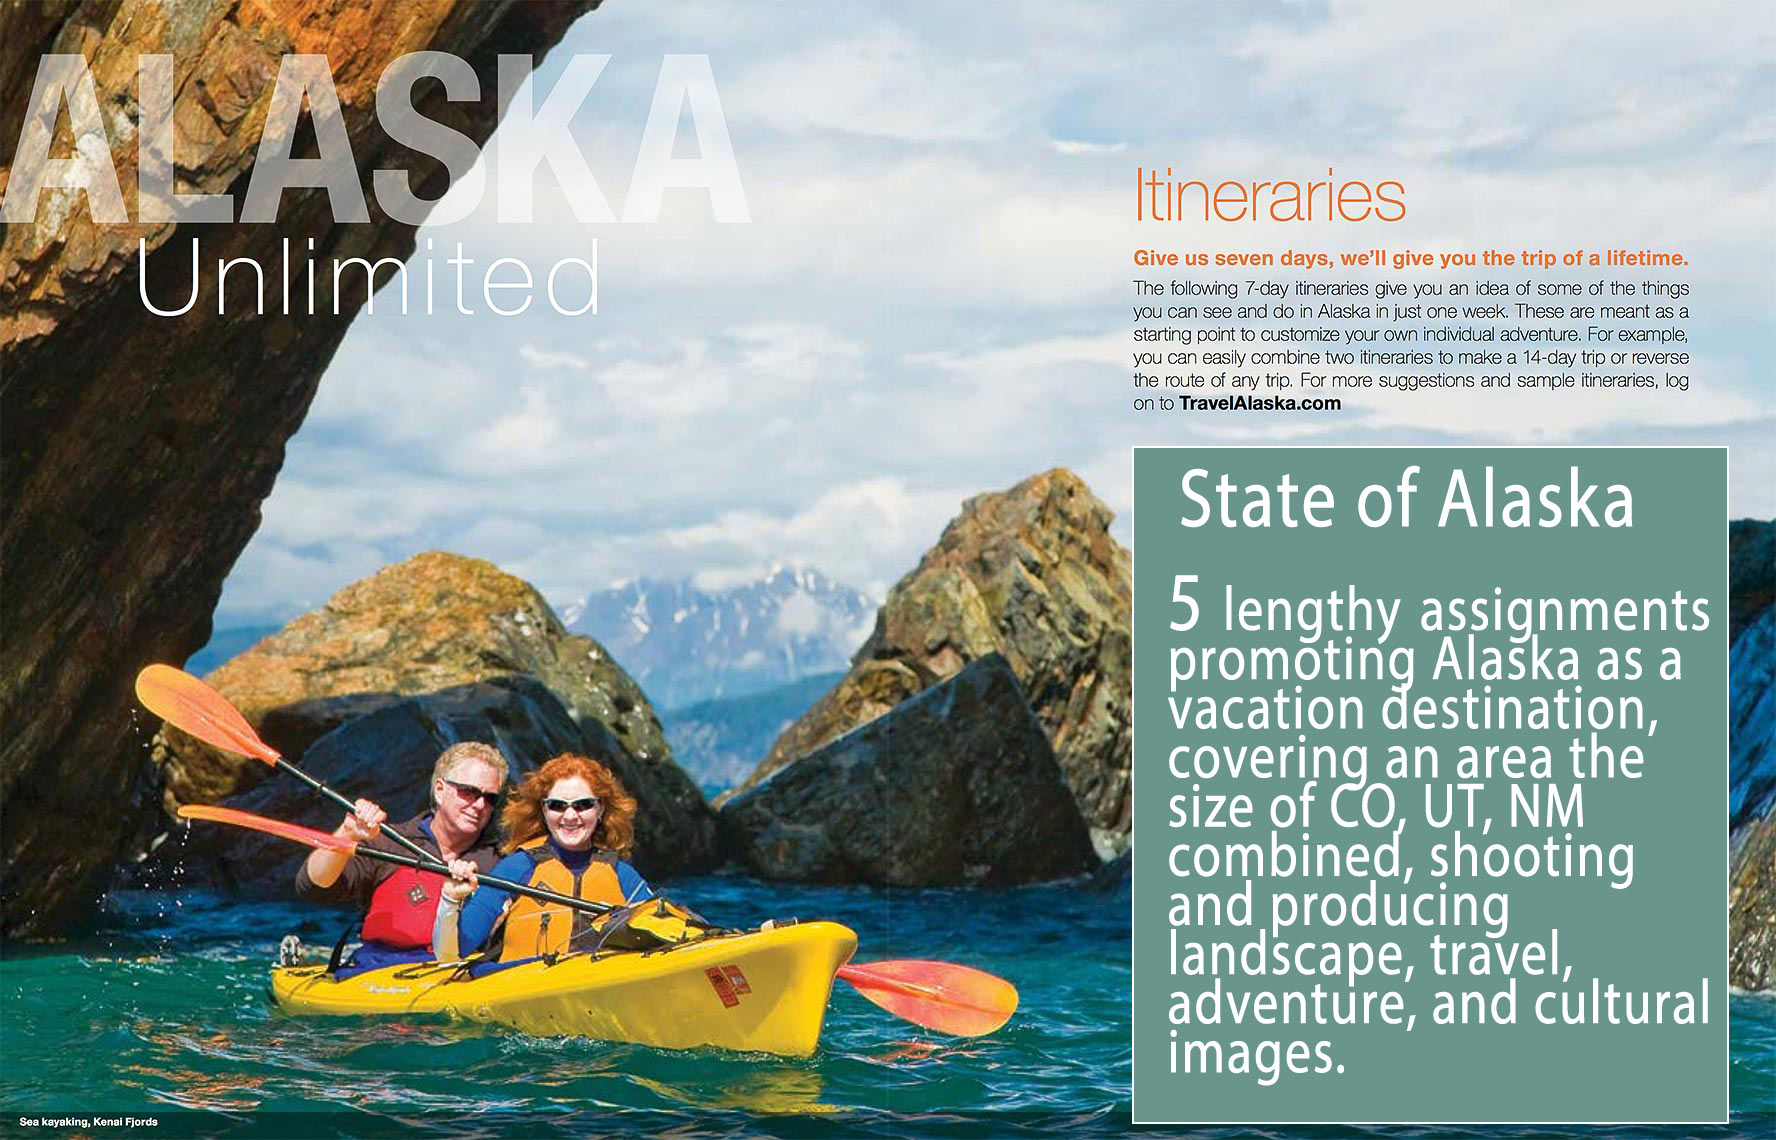 Alaska-State-Vacation-Planner-Kayak-Double-Page-Spread